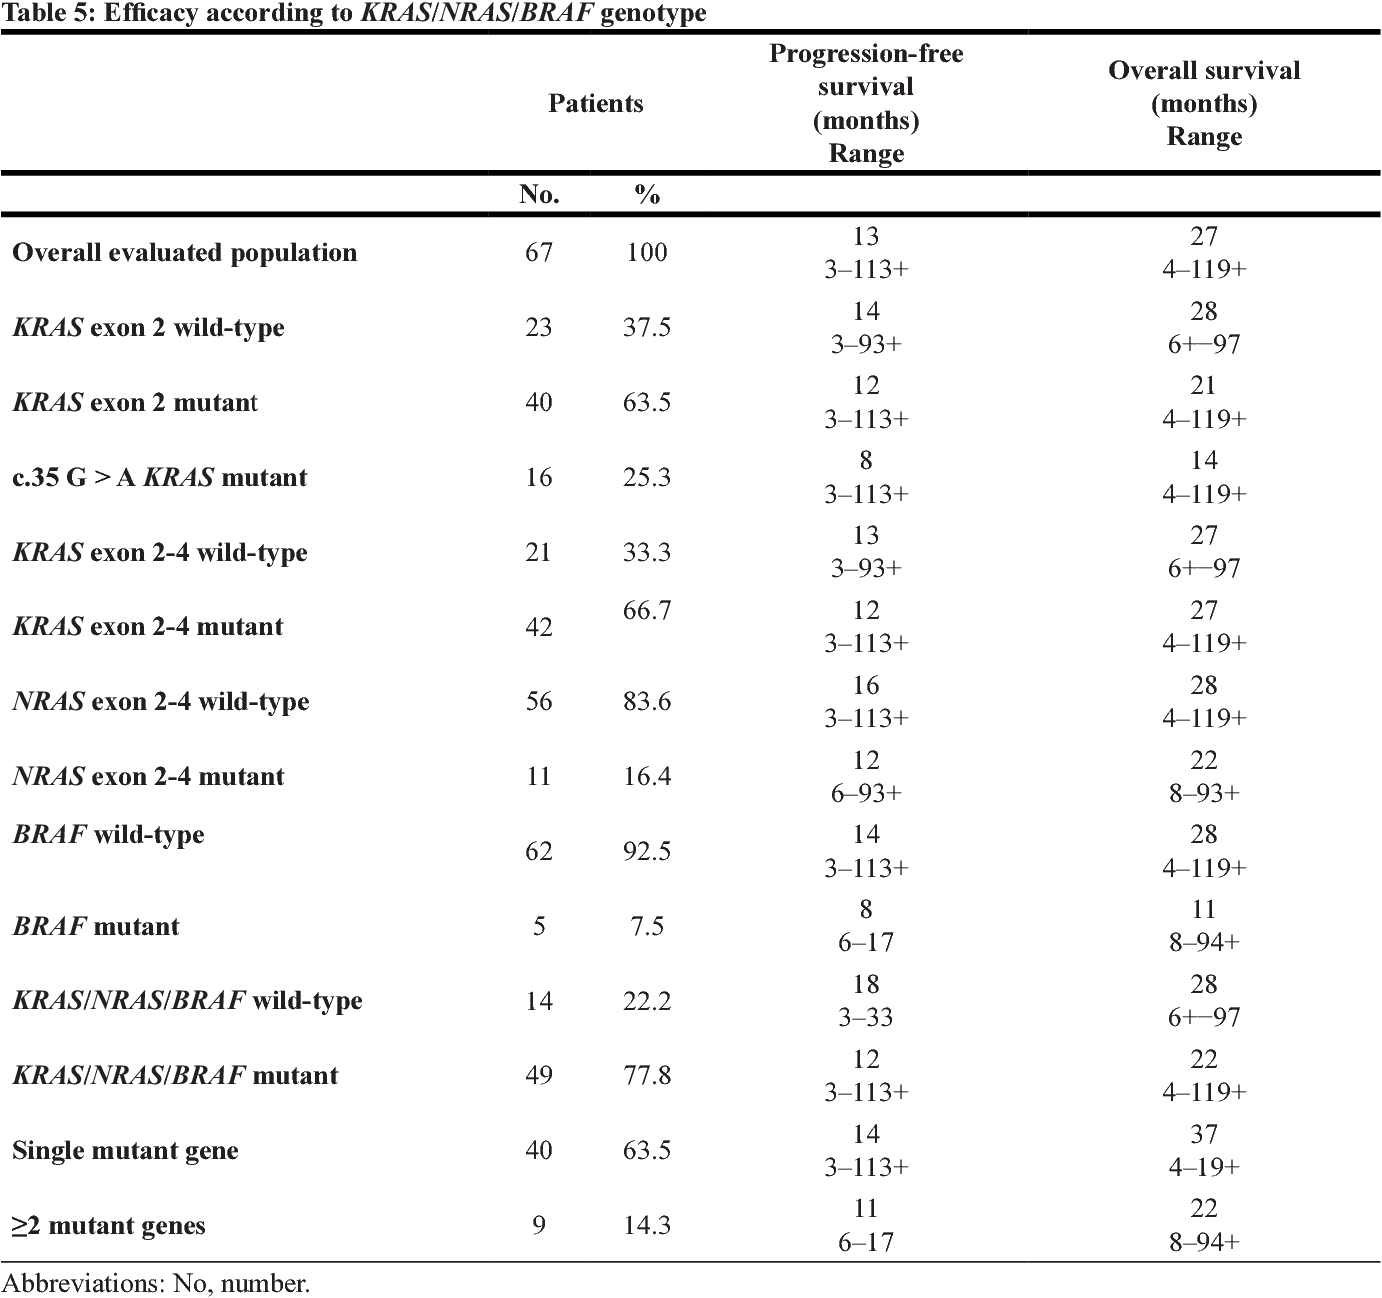 Table 5 From Kras Nras And Braf Mutations Detected By Next Generation Sequencing And Differential Clinical Outcome In Metastatic Colorectal Cancer Mcrc Patients Treated With First Line Fir B Fox Adding Bevacizumab Bev To